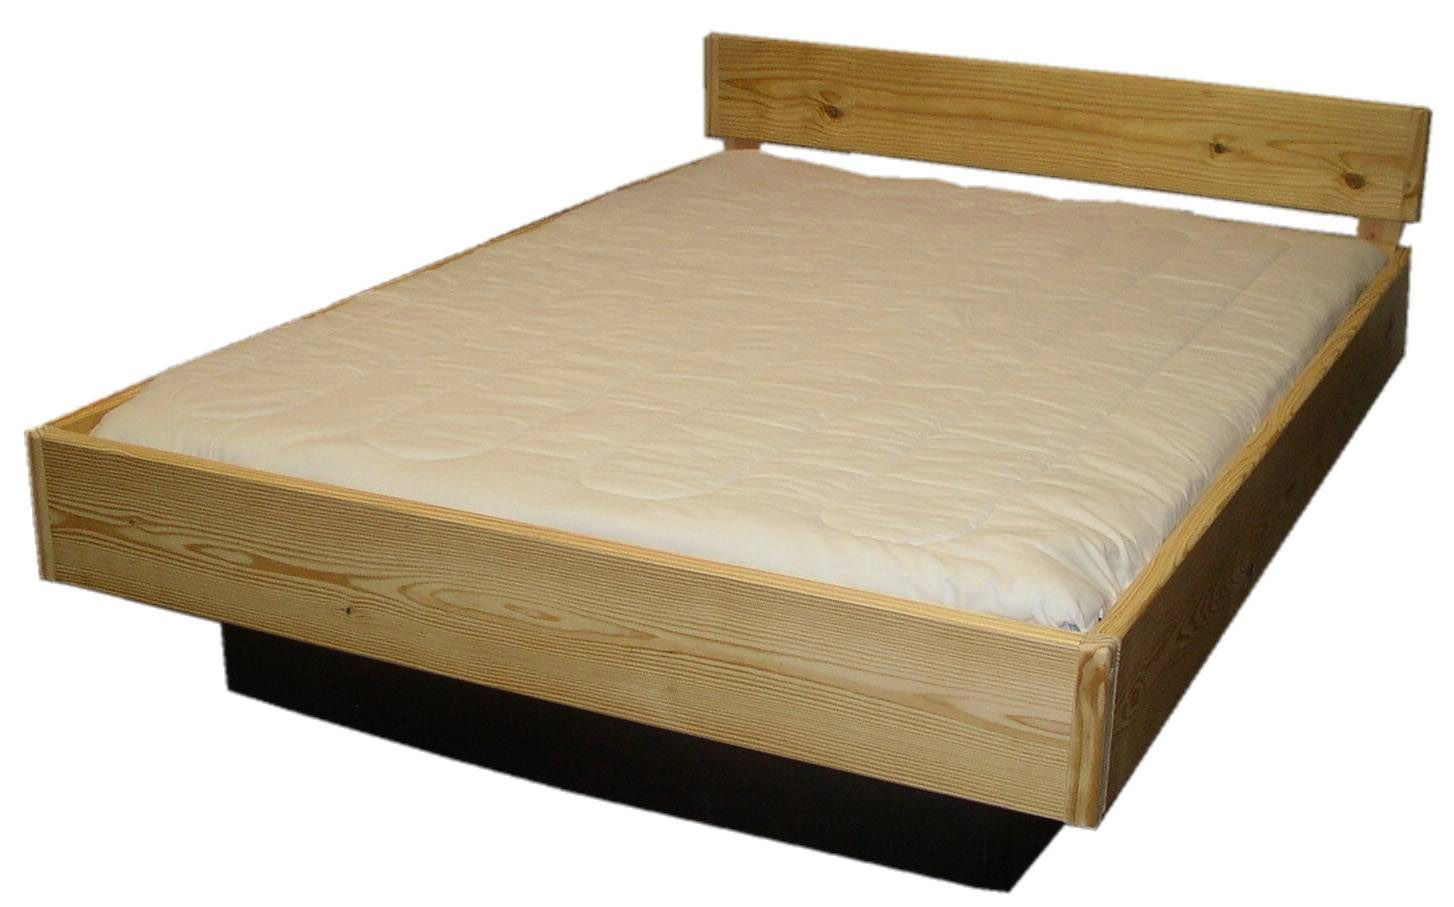 We Have Been In The Waterbed Industry Since 1971 And Have A Wealth